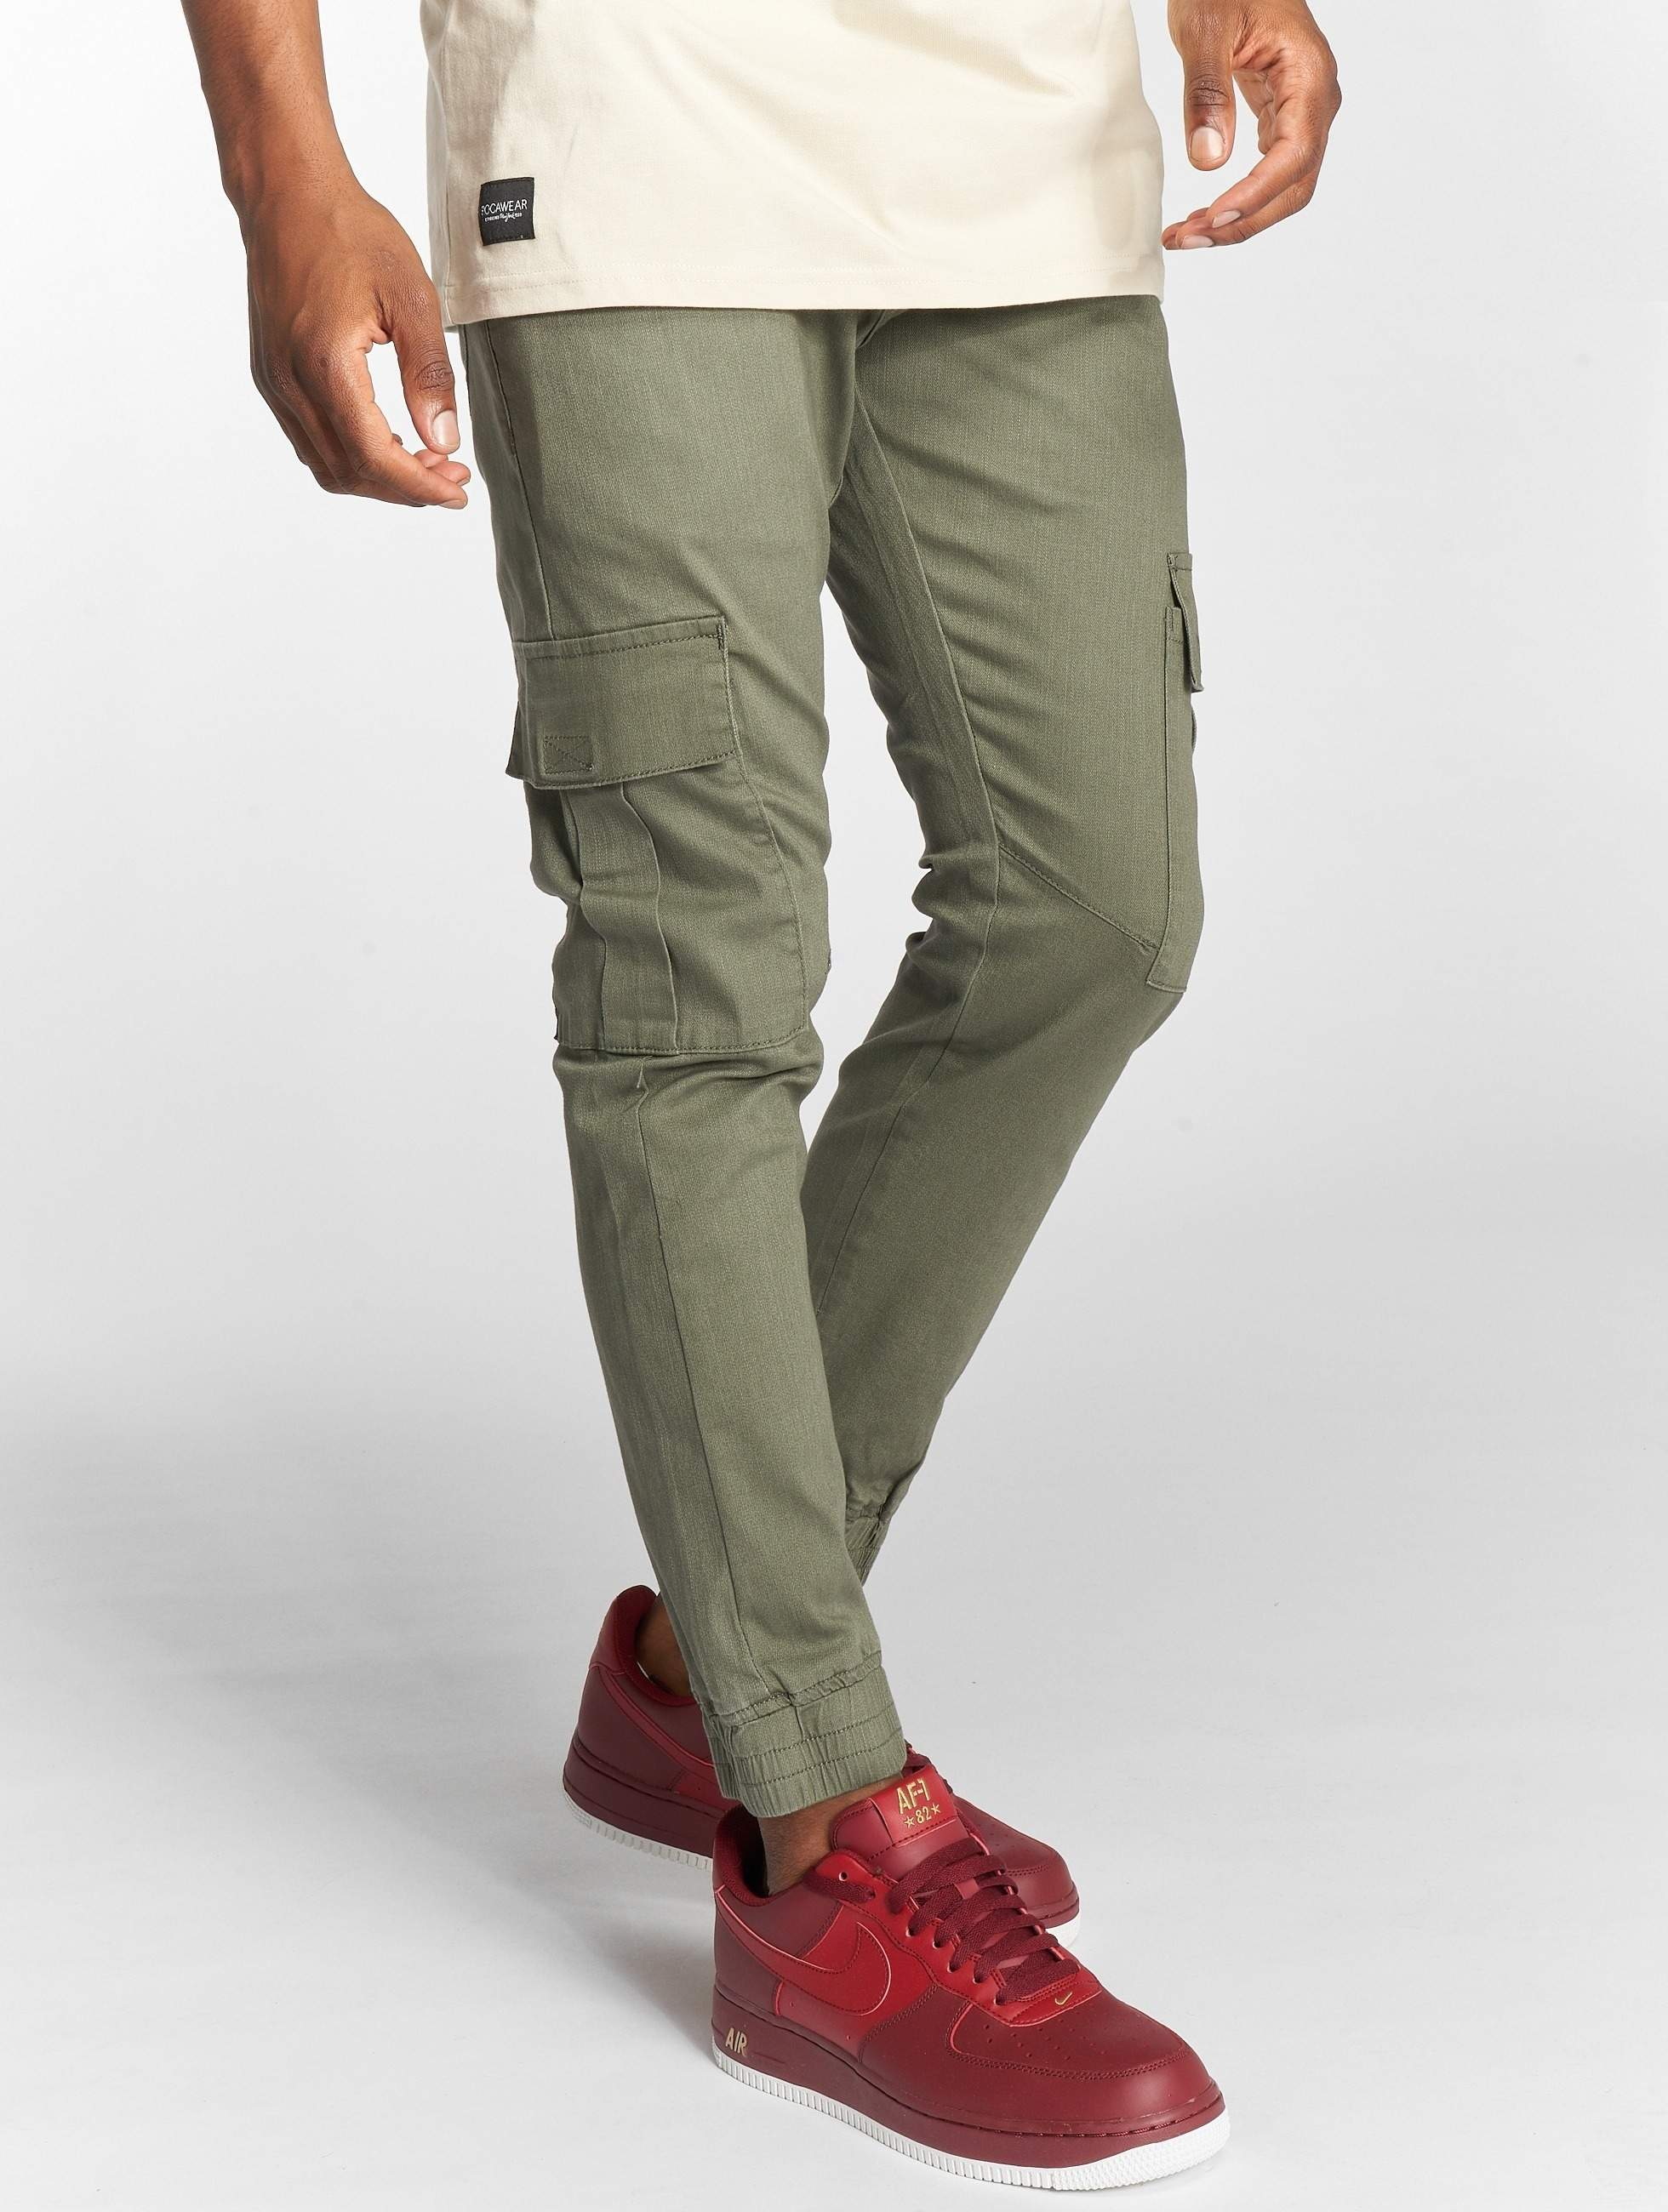 Rocawear / Cargo Cargo Fit in olive W 31